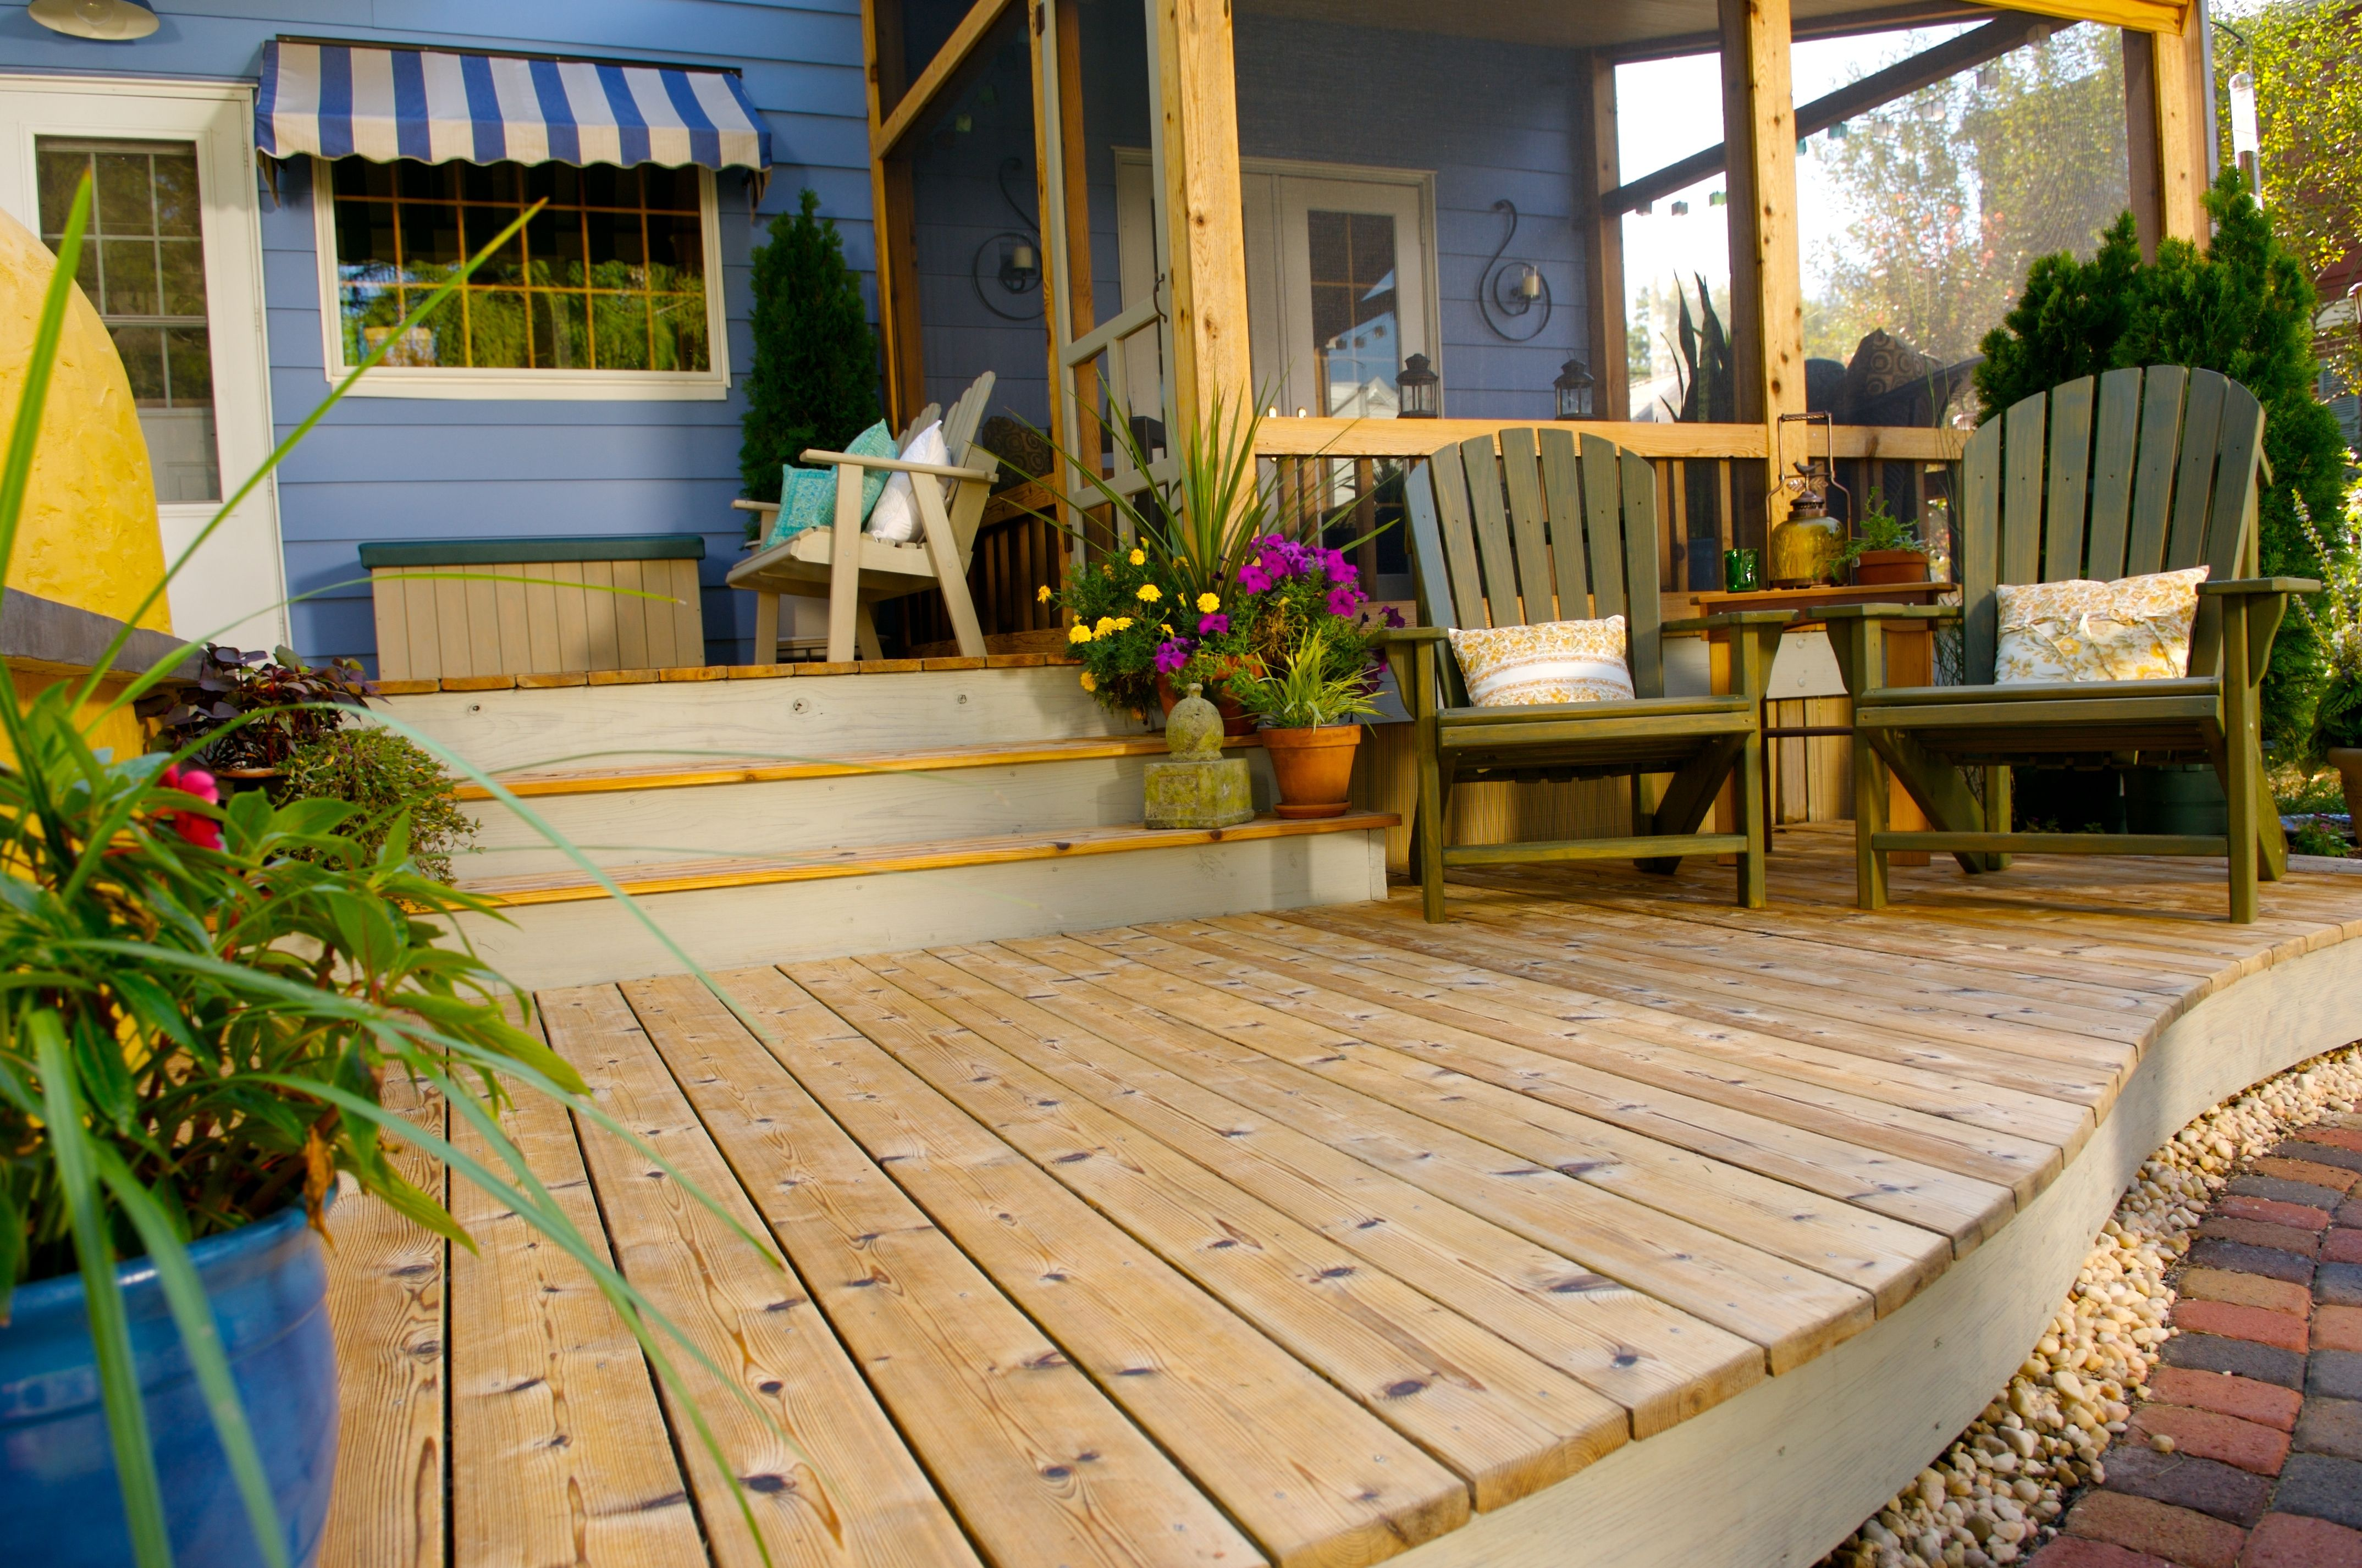 A Slight Curve Adds Impact On The Lower Level Of Deck And Thompson S Water Seal House Stains Add Subtle Color To Contrast Wood Which Was